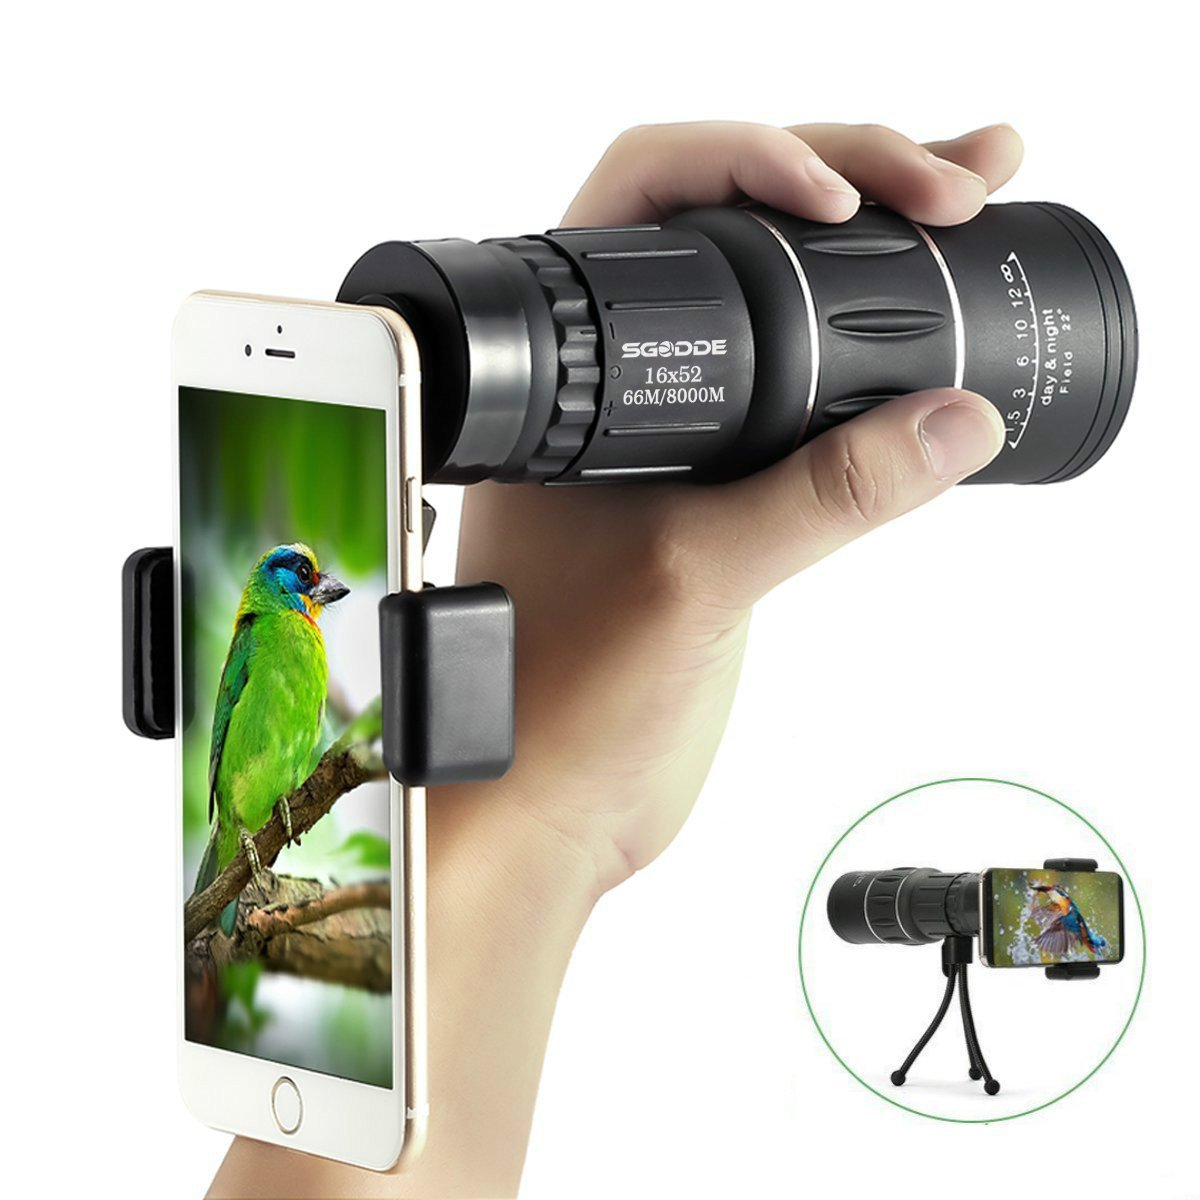 Top 20 Best Monoculars for Bird Watching Reviews 2018-2019 - cover